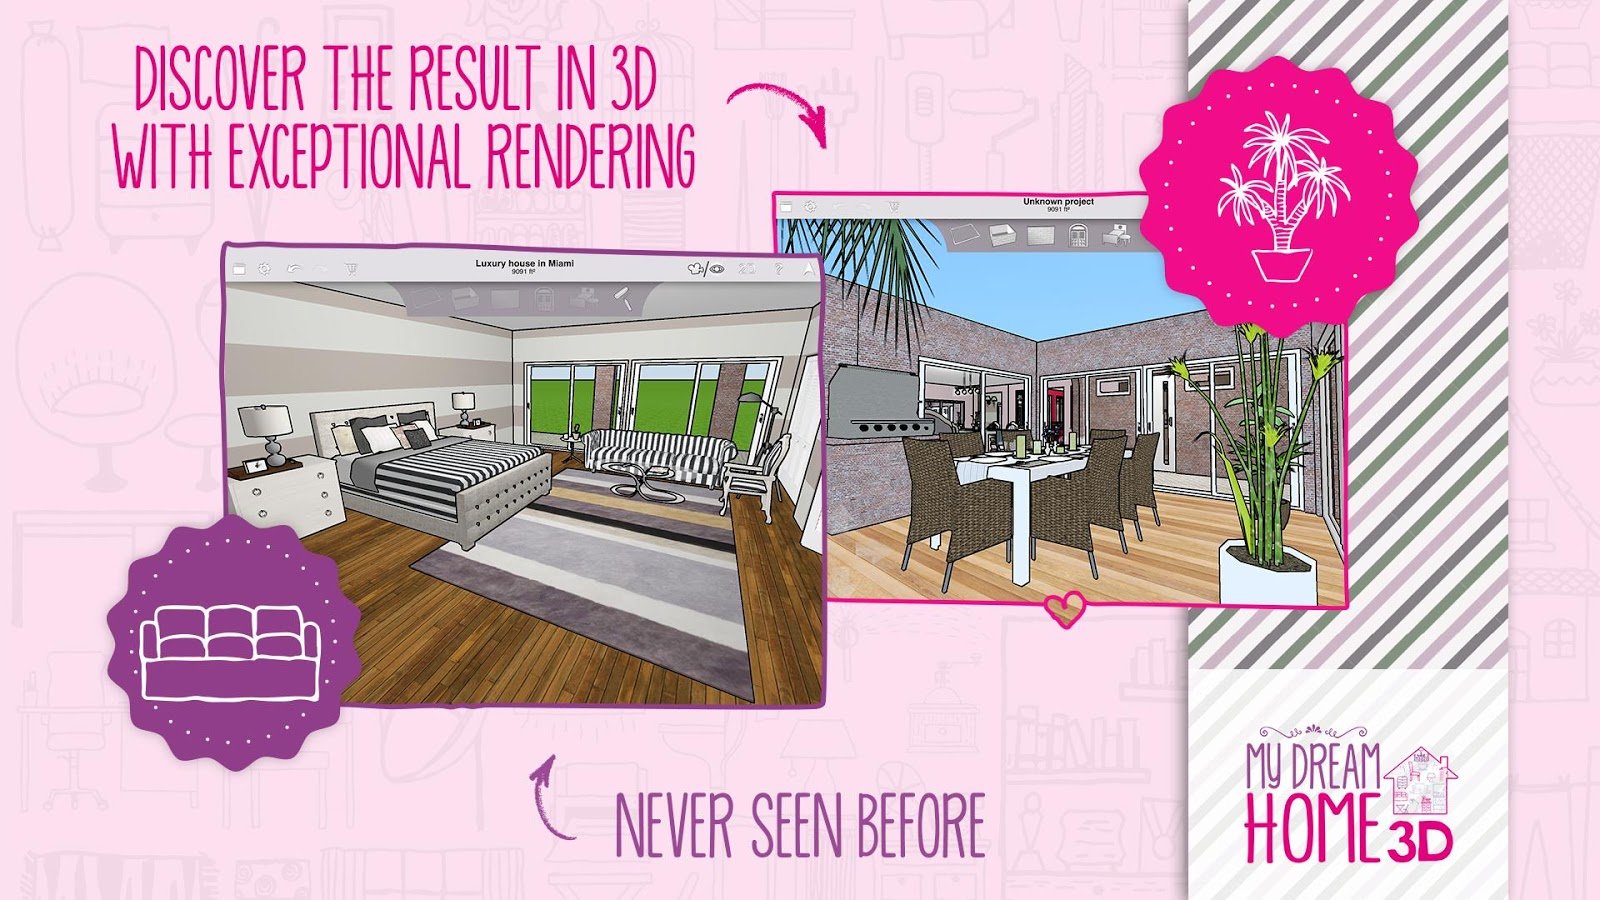 Home Design 3D My Dream HomeAndroid Apps on Google Play